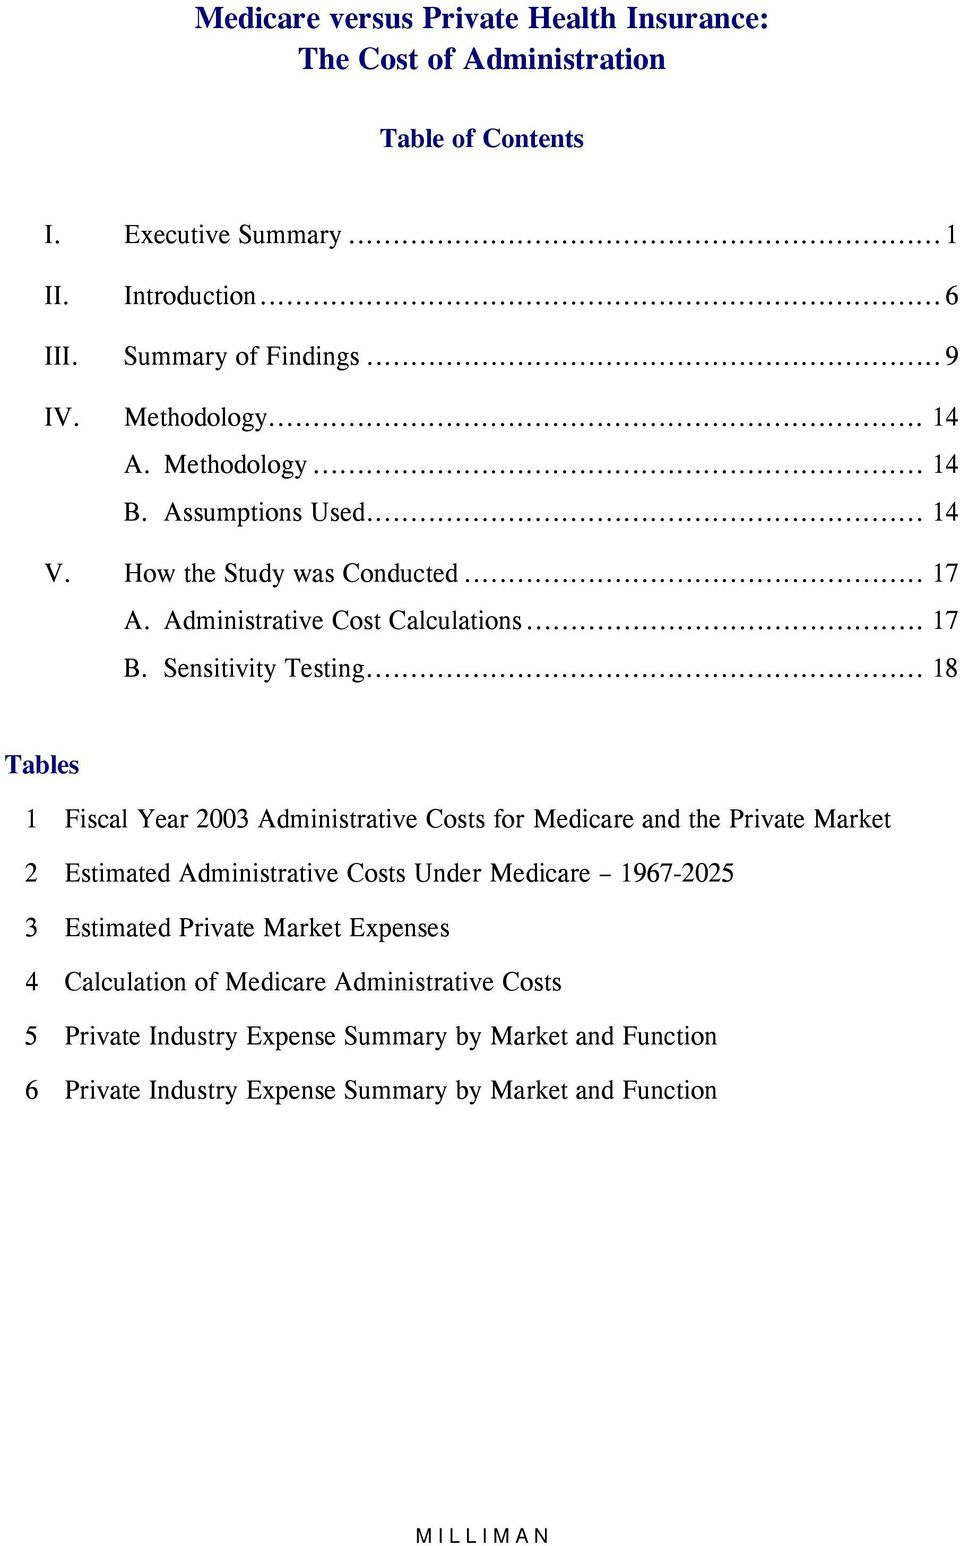 .. 18 Tables 1 Fiscal Year 2003 Administrative Costs for Medicare and the Private Market 2 Estimated Administrative Costs Under Medicare 1967-2025 3 Estimated Private